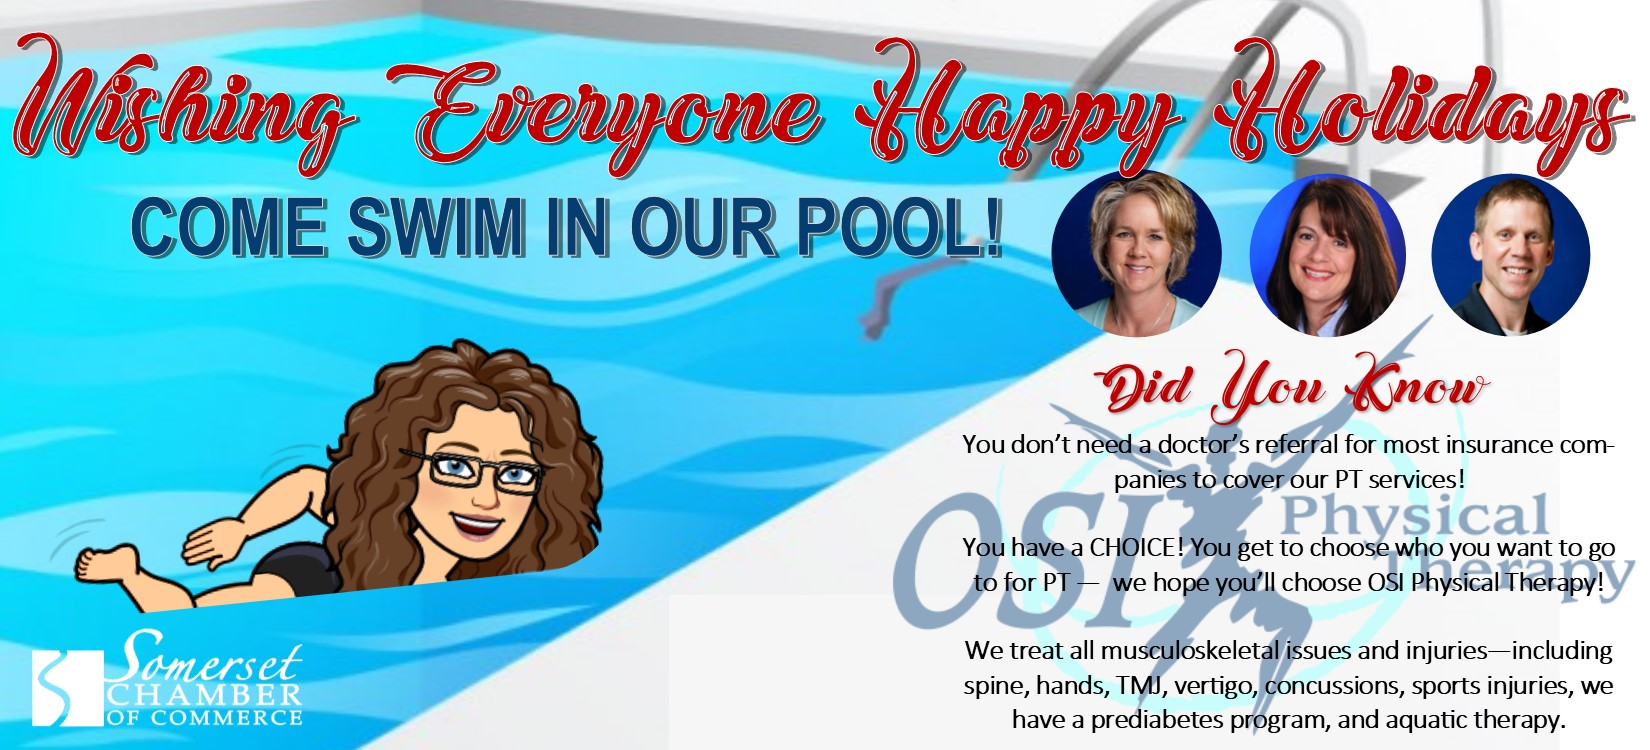 # 4 - Come Swim! - OSI's POOL IS OPEN TO THE PUBLIC!!MONTHLY USE (unlimited use):$20 / month for Training Room members$40 / month for Non-Training Room membersSINGLE USE (one time use):$5 / Individual Pool Session$10 / Family Pool Session (2 or more people)If you are interested in using the OSI pool please call ahead to make sure no therapy sessions are scheduled during your swim. Call us at (715) 247-5735!($)